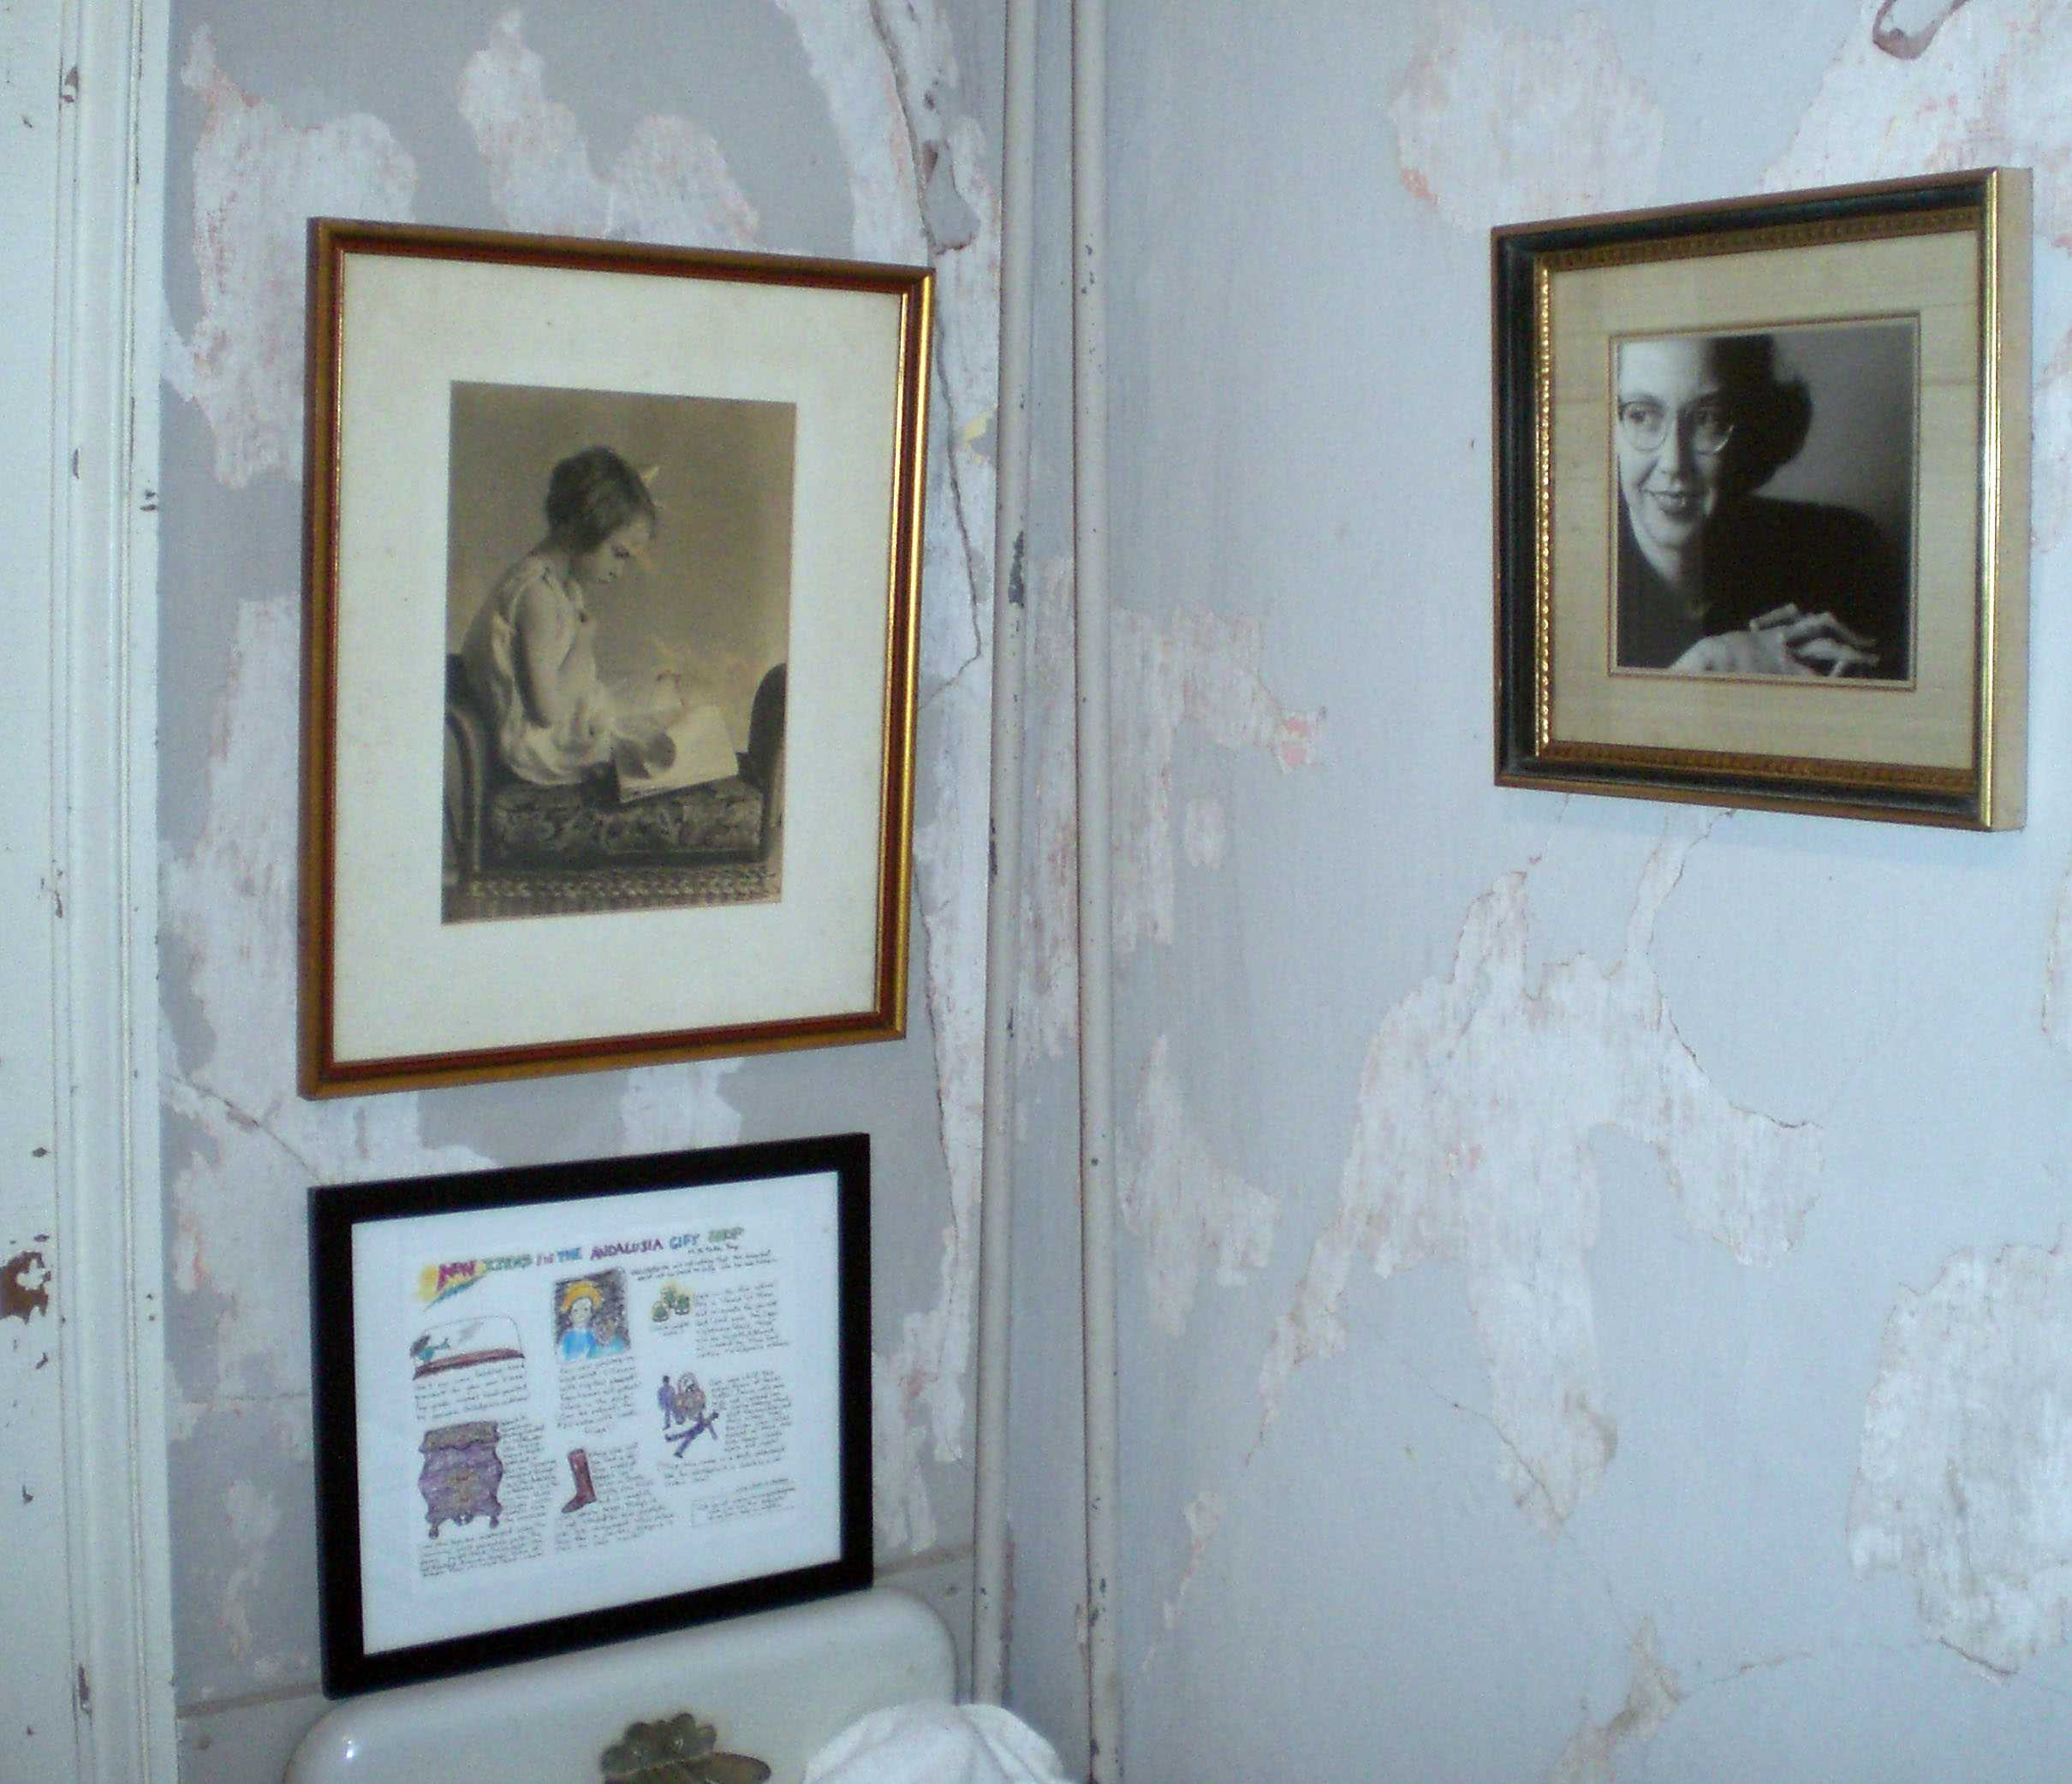 Home shown with pictures of Flannery O' Connor adorning the walls